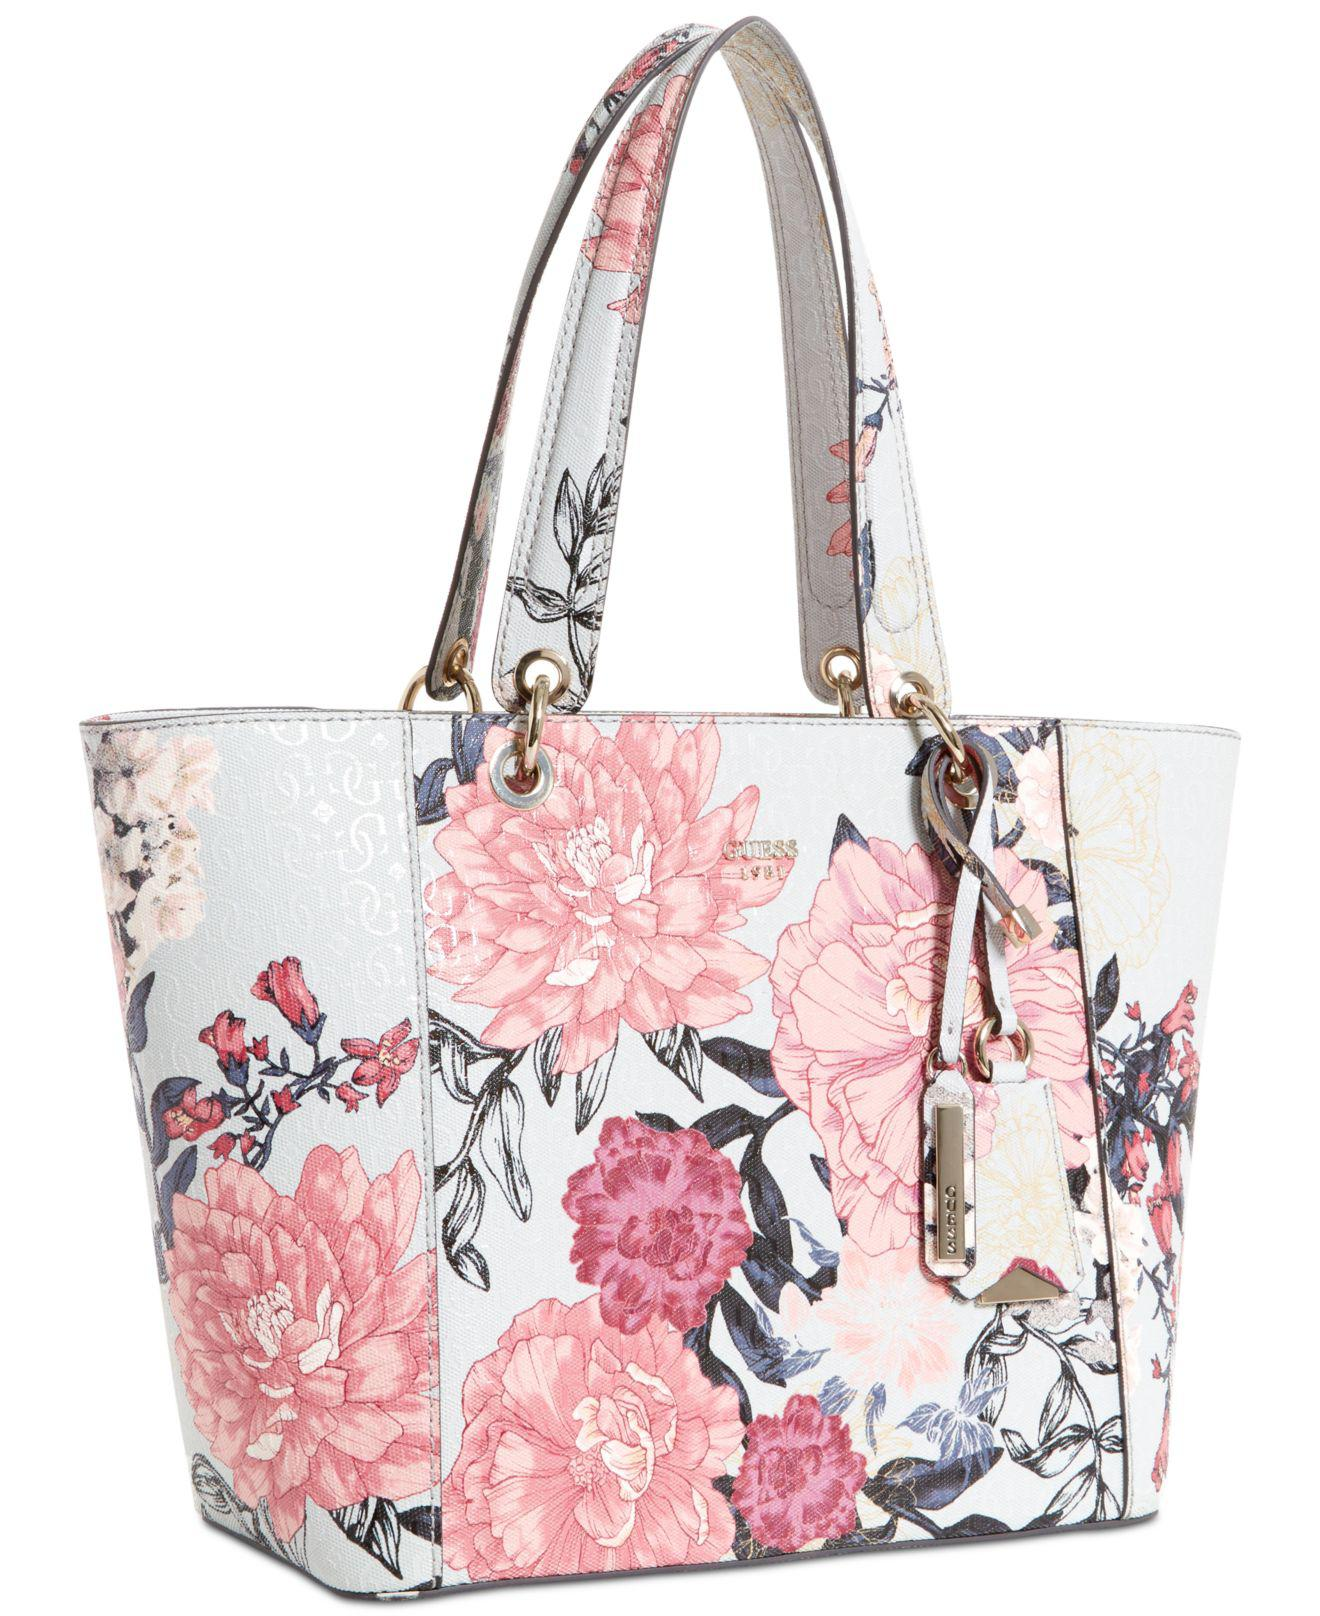 Lyst - Guess Kamryn Extra-large Tote 8799334b0a